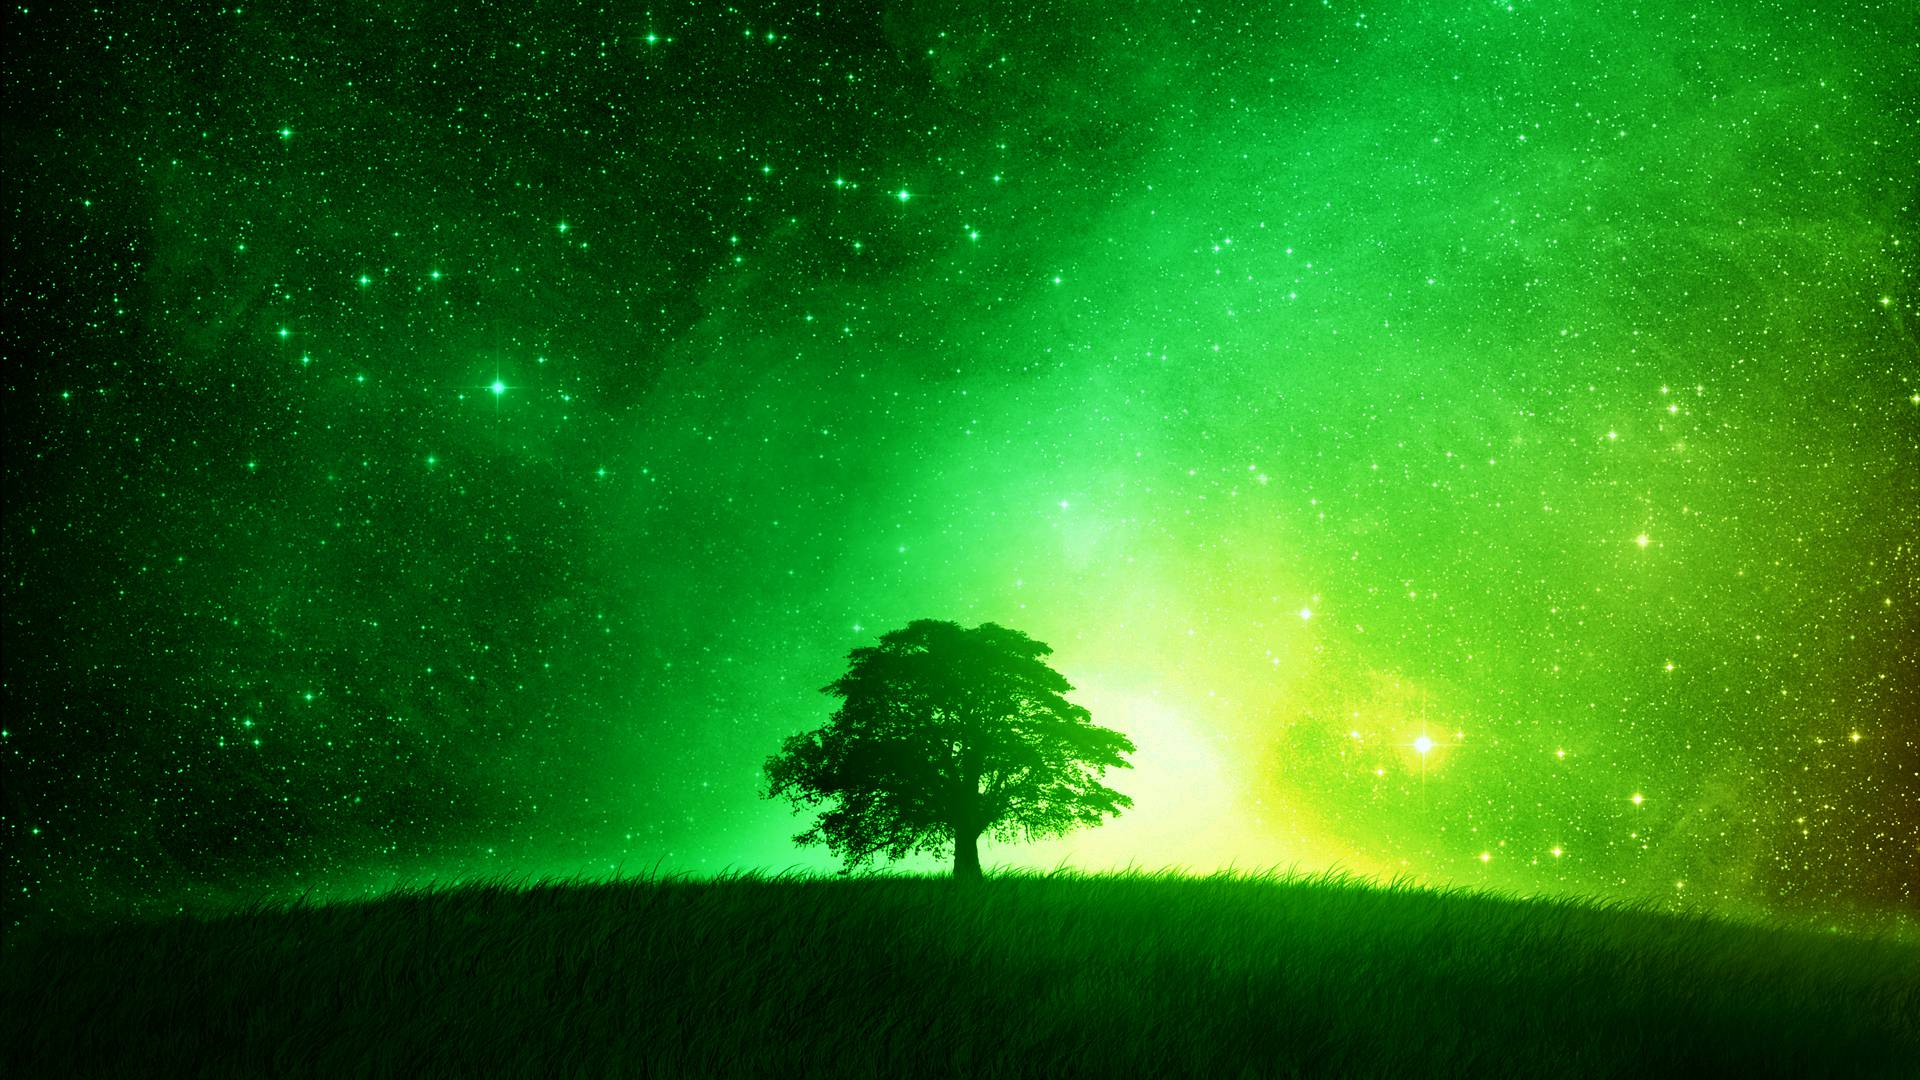 Green Wallpaper 1920×1080 HD